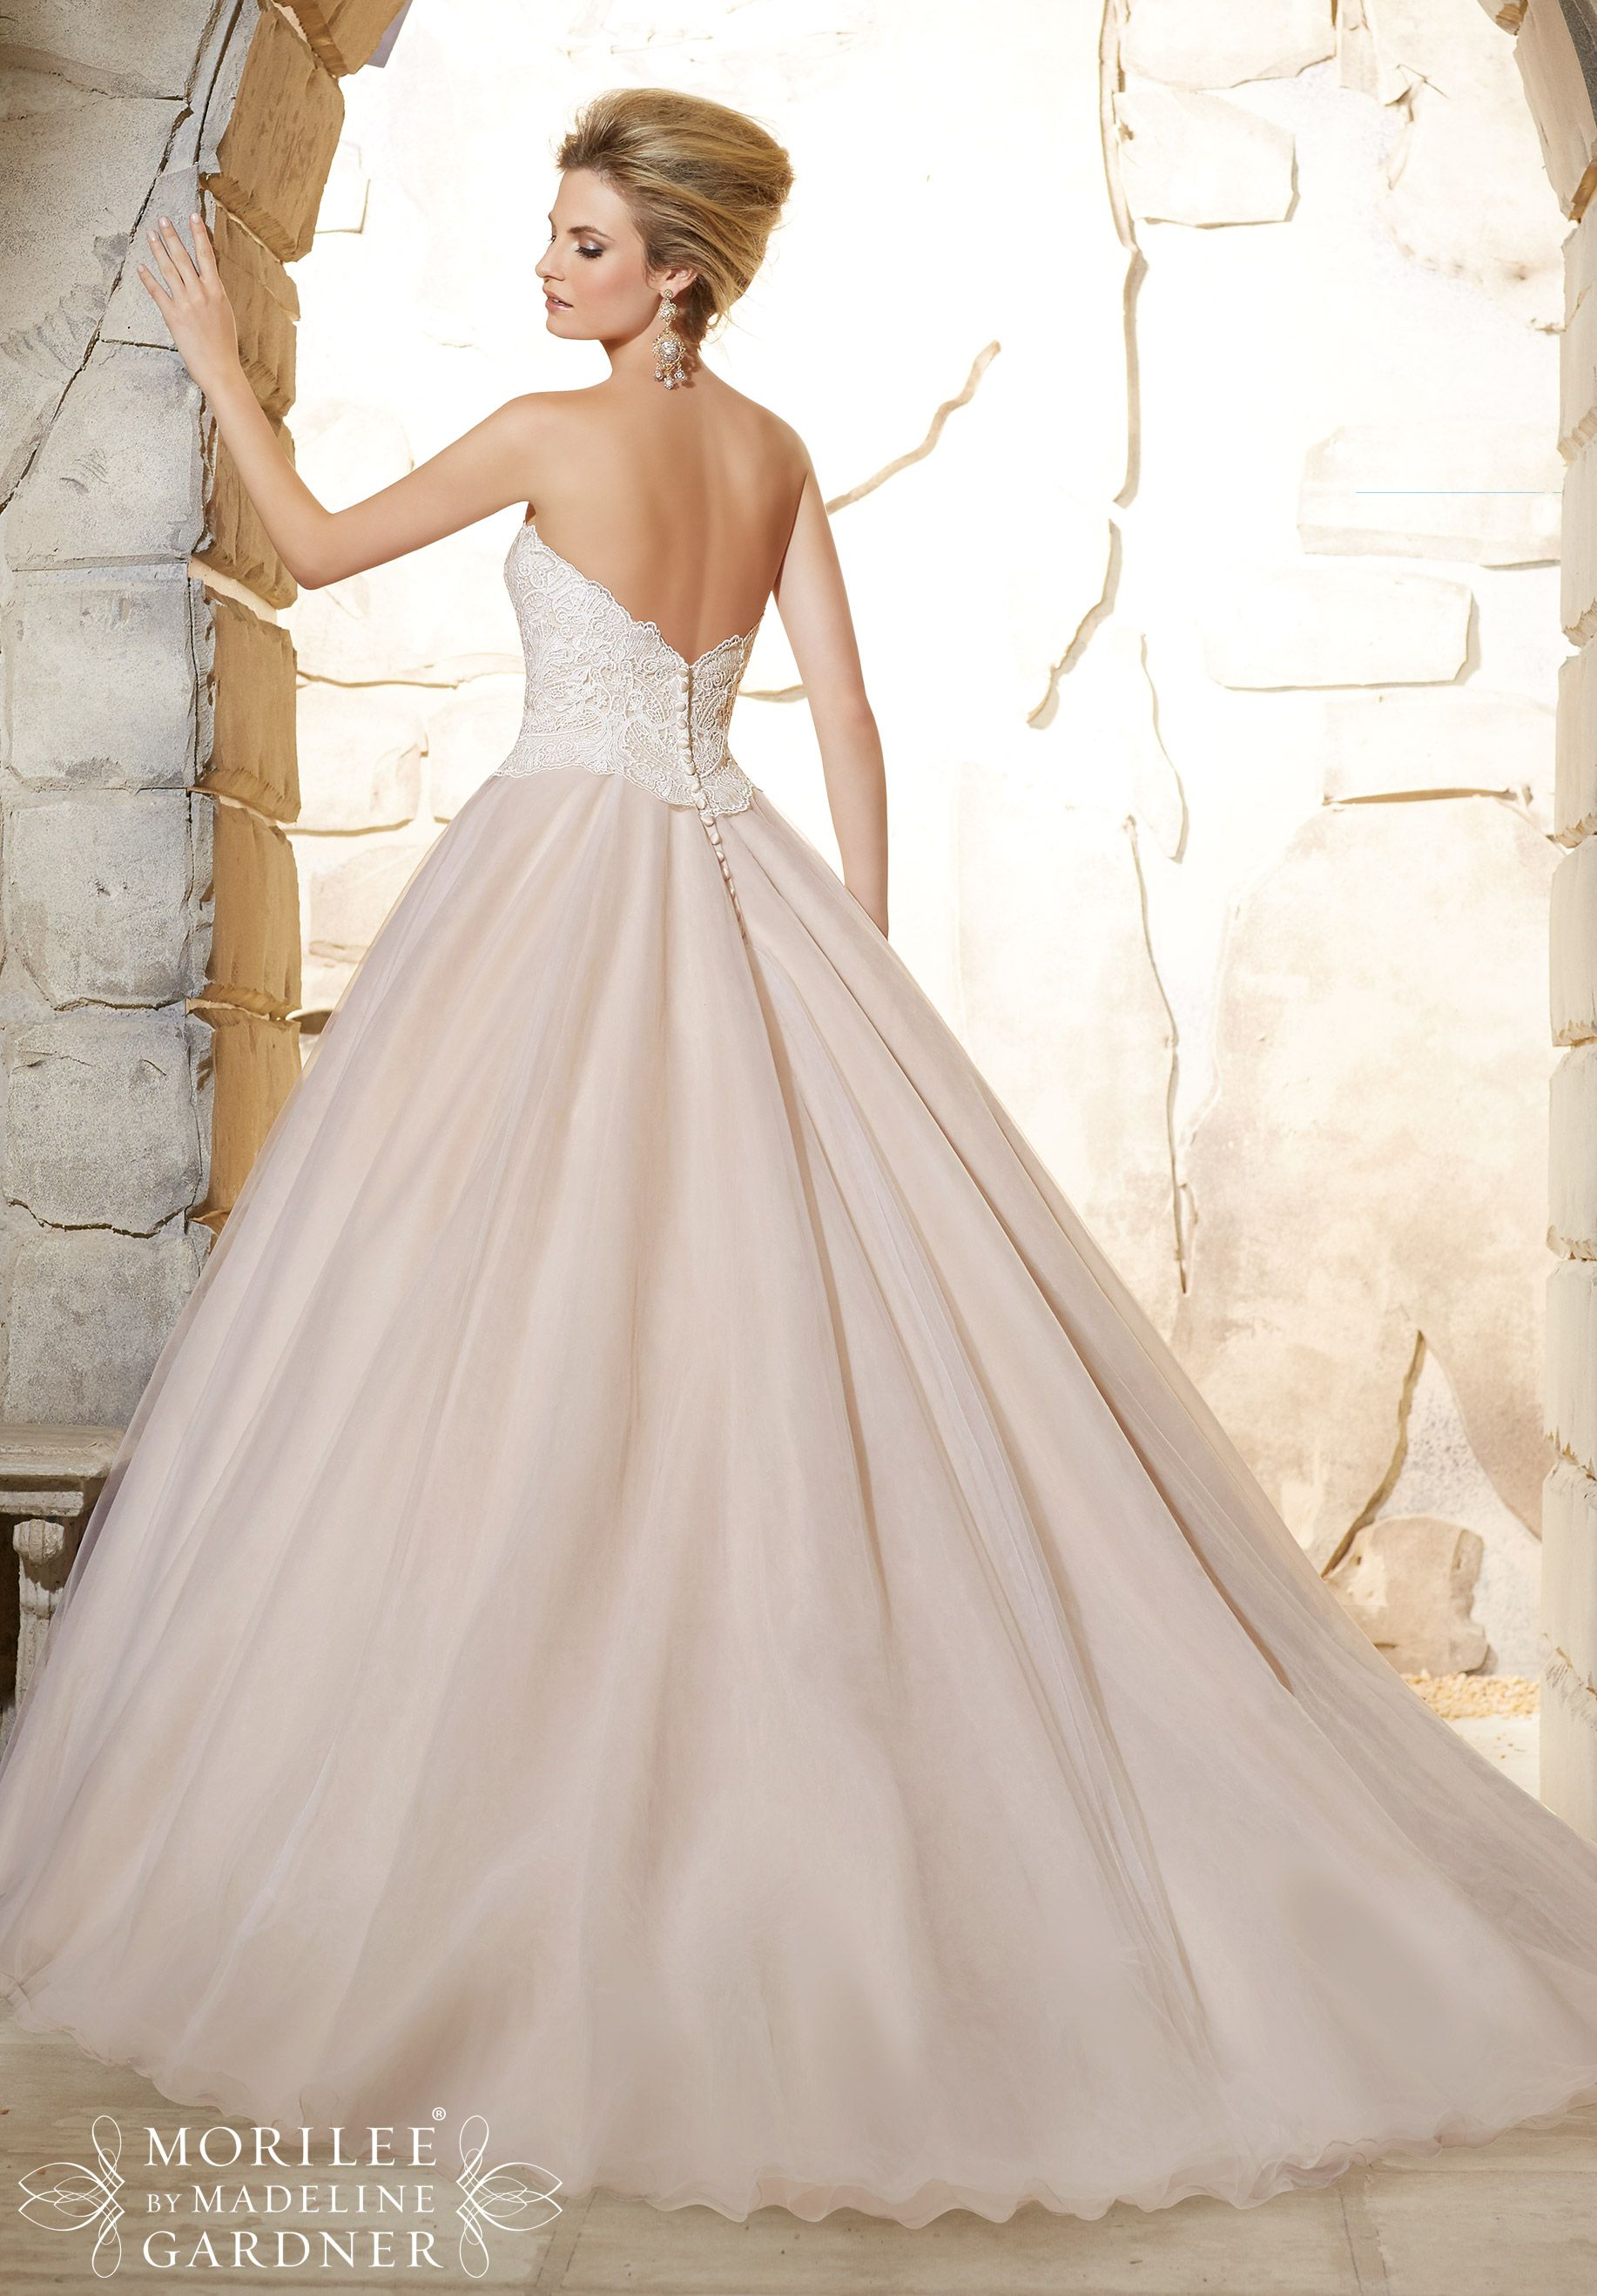 Unique Come in to see this beautiful Mori Lee gown Wedding Dress Elegant Venice Lace Bodice onto the Classic Tulle Ball Gown